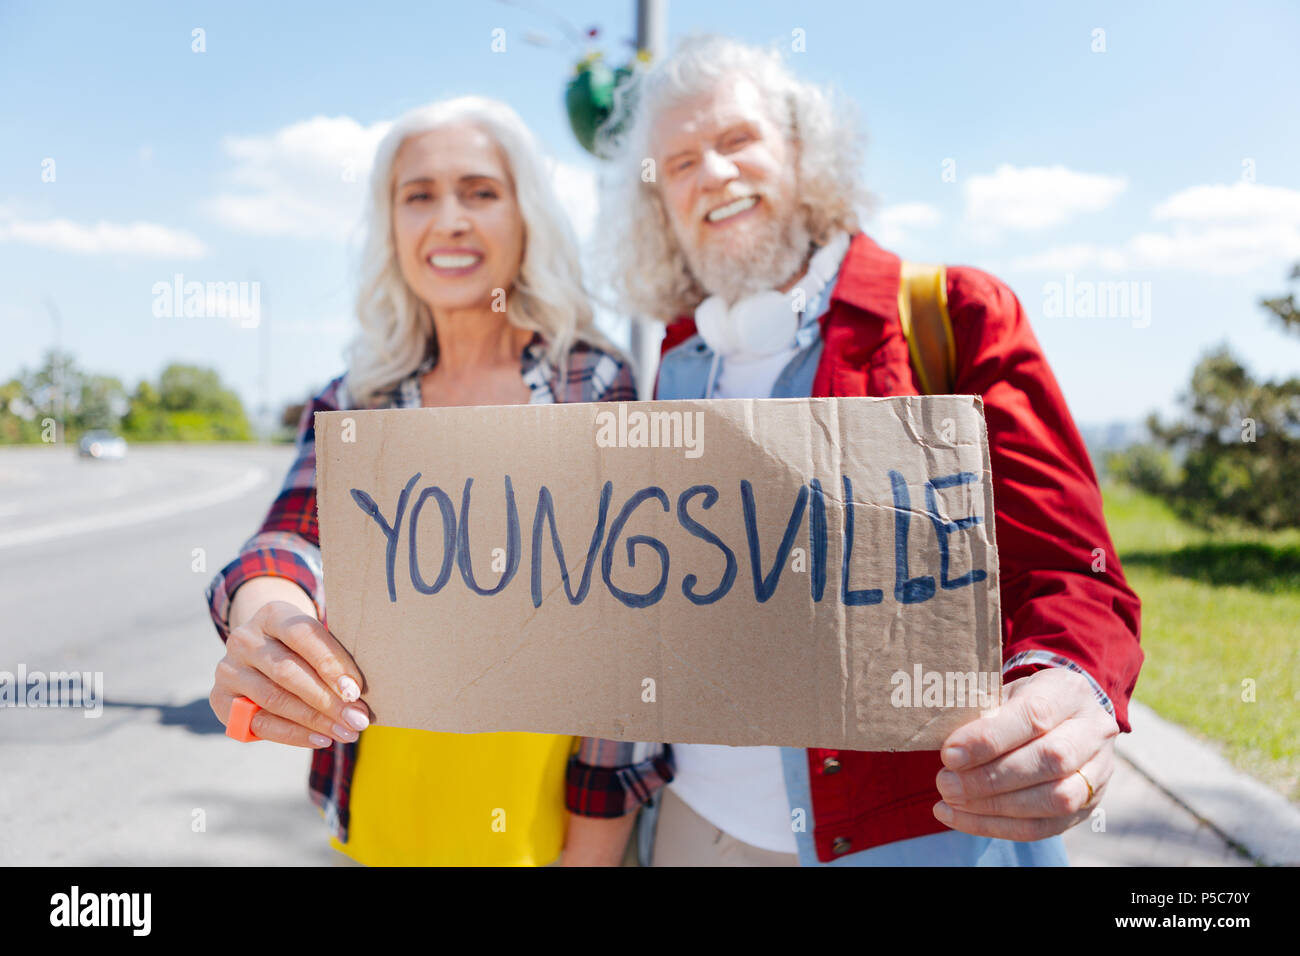 Selective focus of a sign - Stock Image